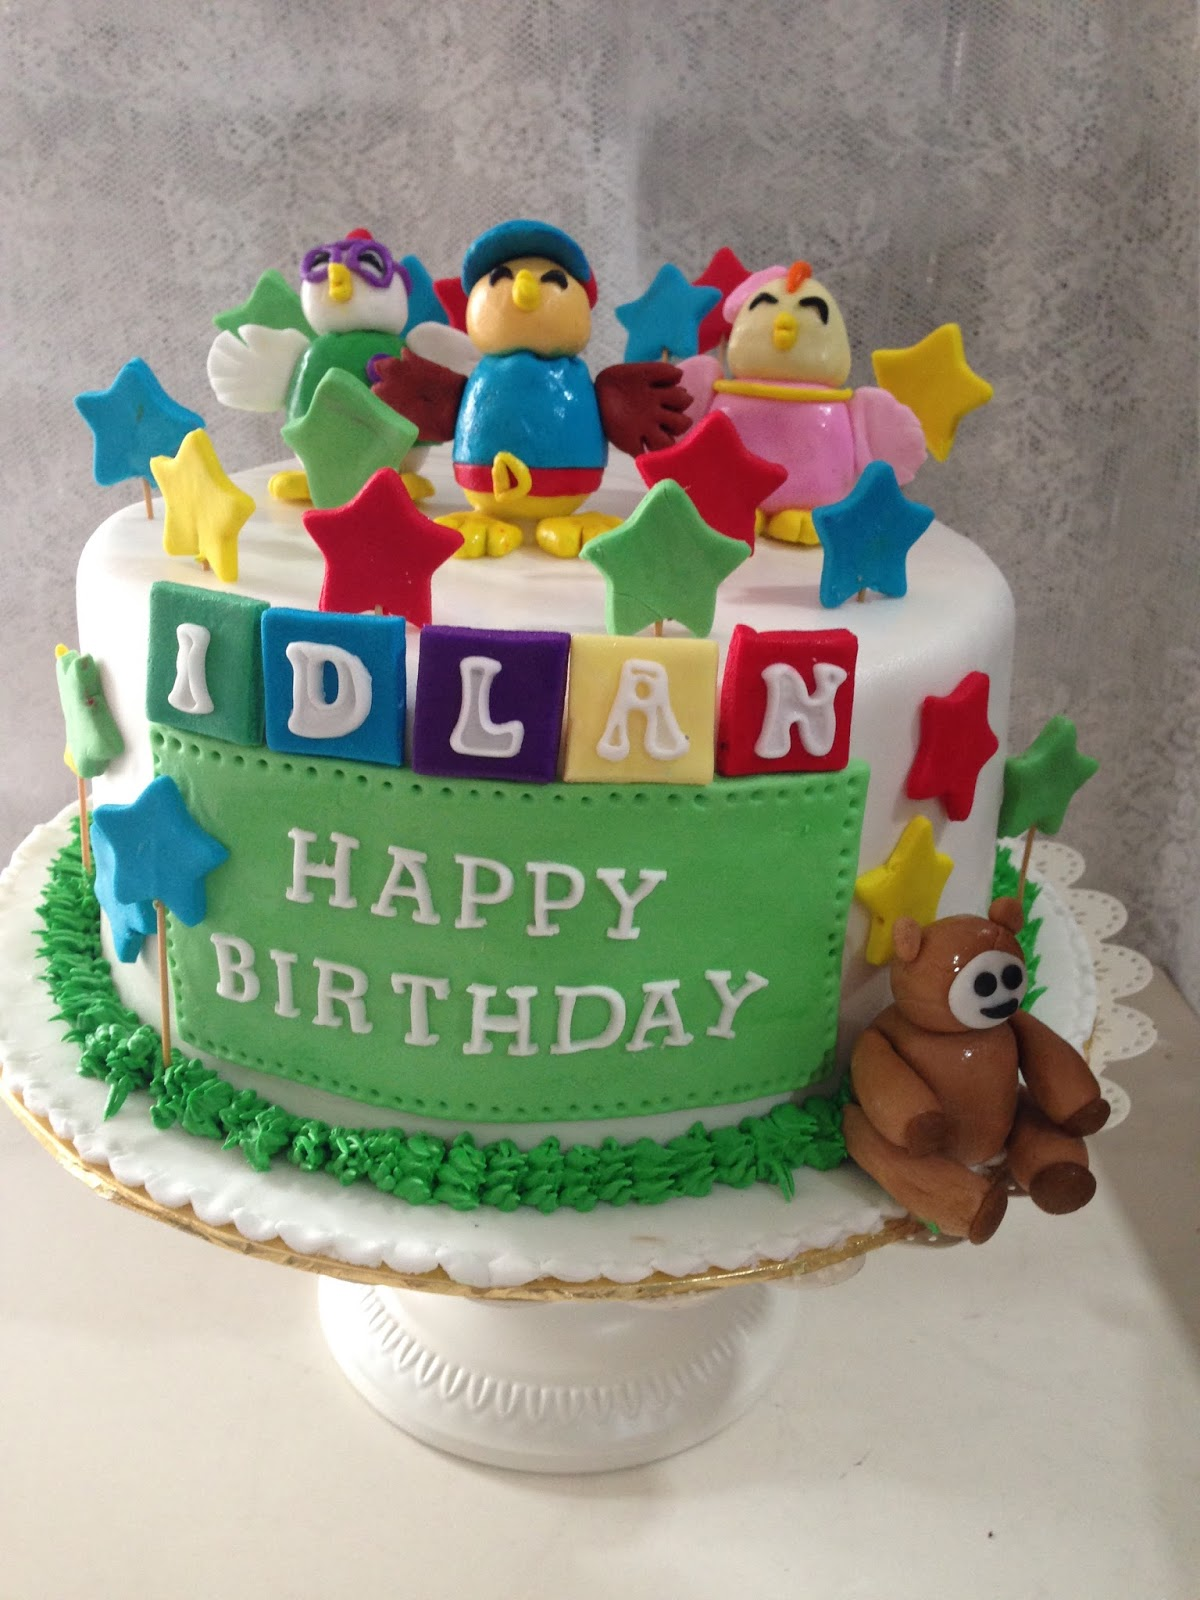 ninie cakes house: Didi and Friends Fondant Cake